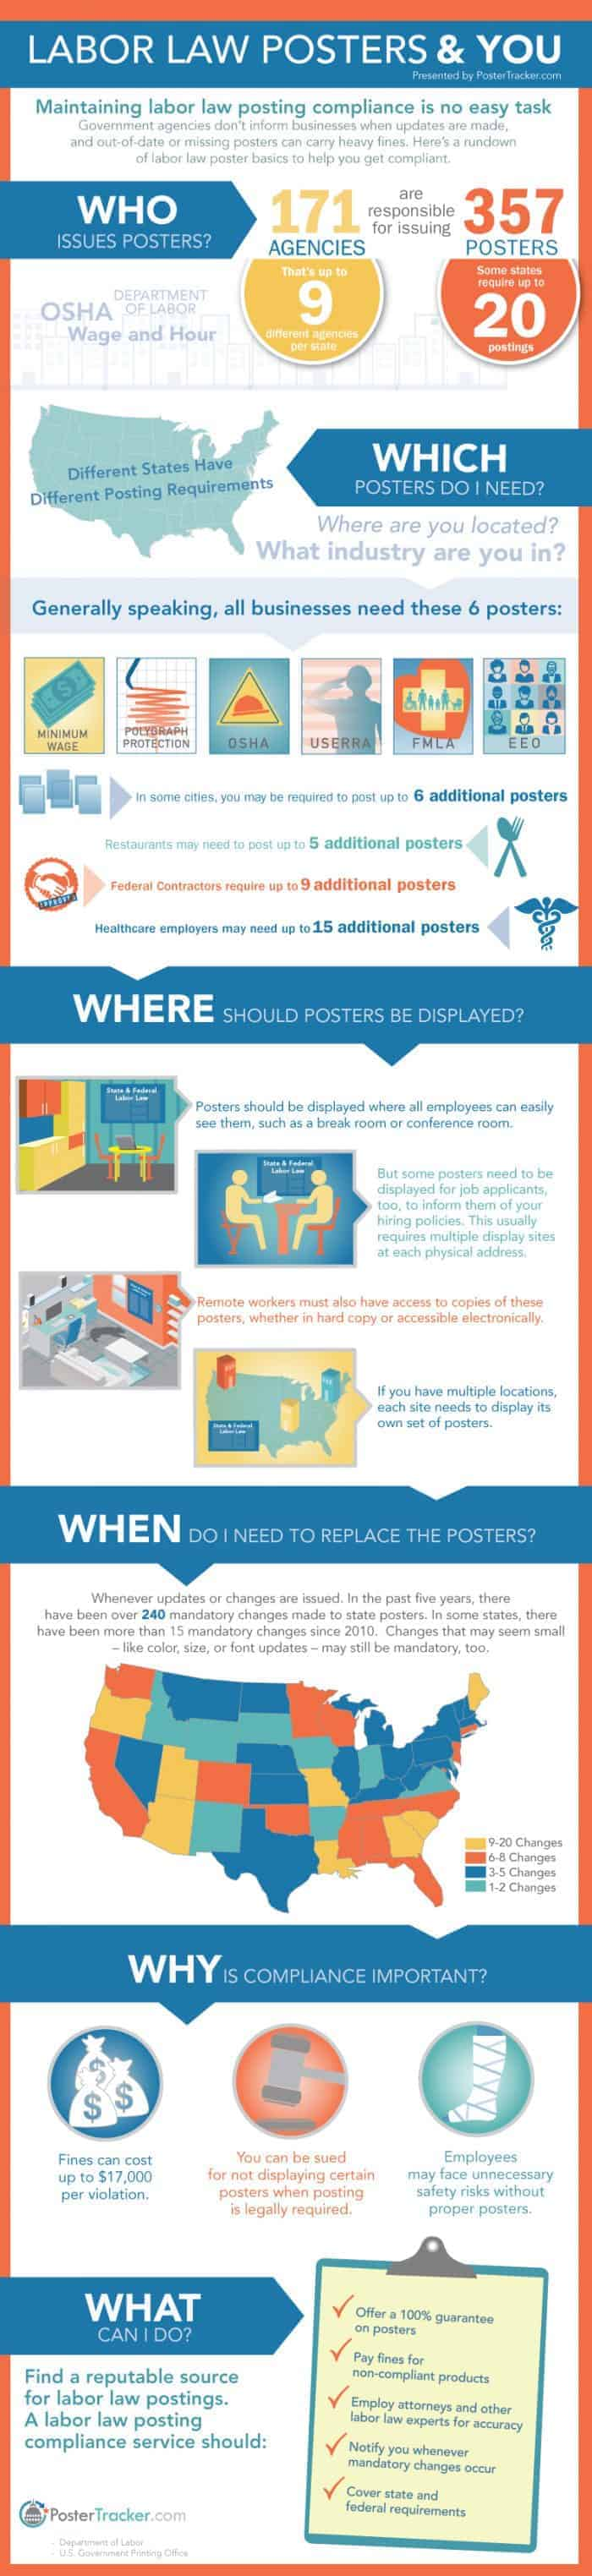 Labor Law Posters & You